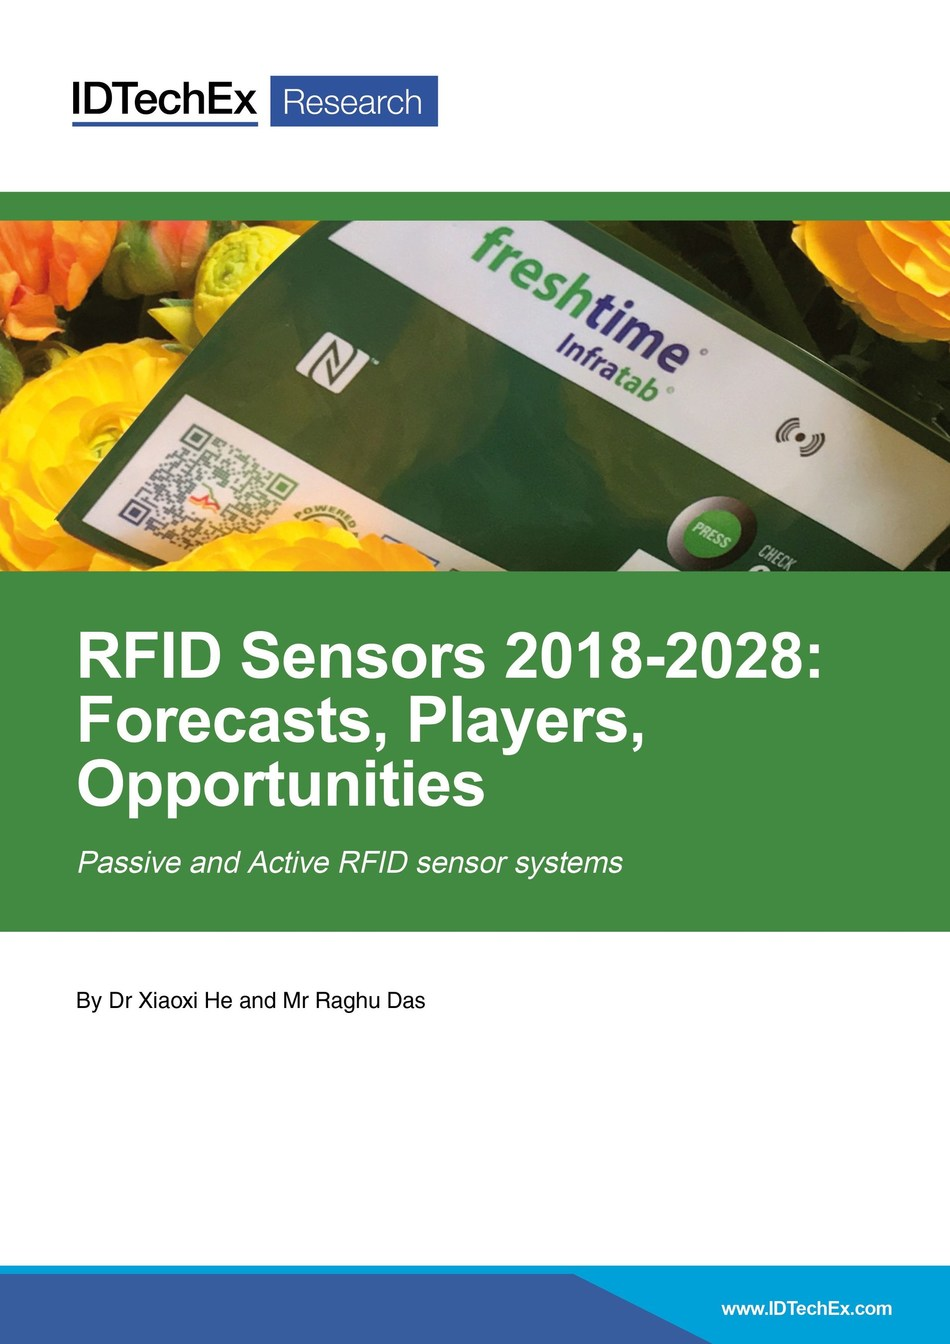 "New report from IDTechEx Research ""RFID Sensors 2018-2028: Forecasts, Players, Opportunities"" available now at www.IDTechEx.com/rfidsensors (PRNewsfoto/IDTechEx)"